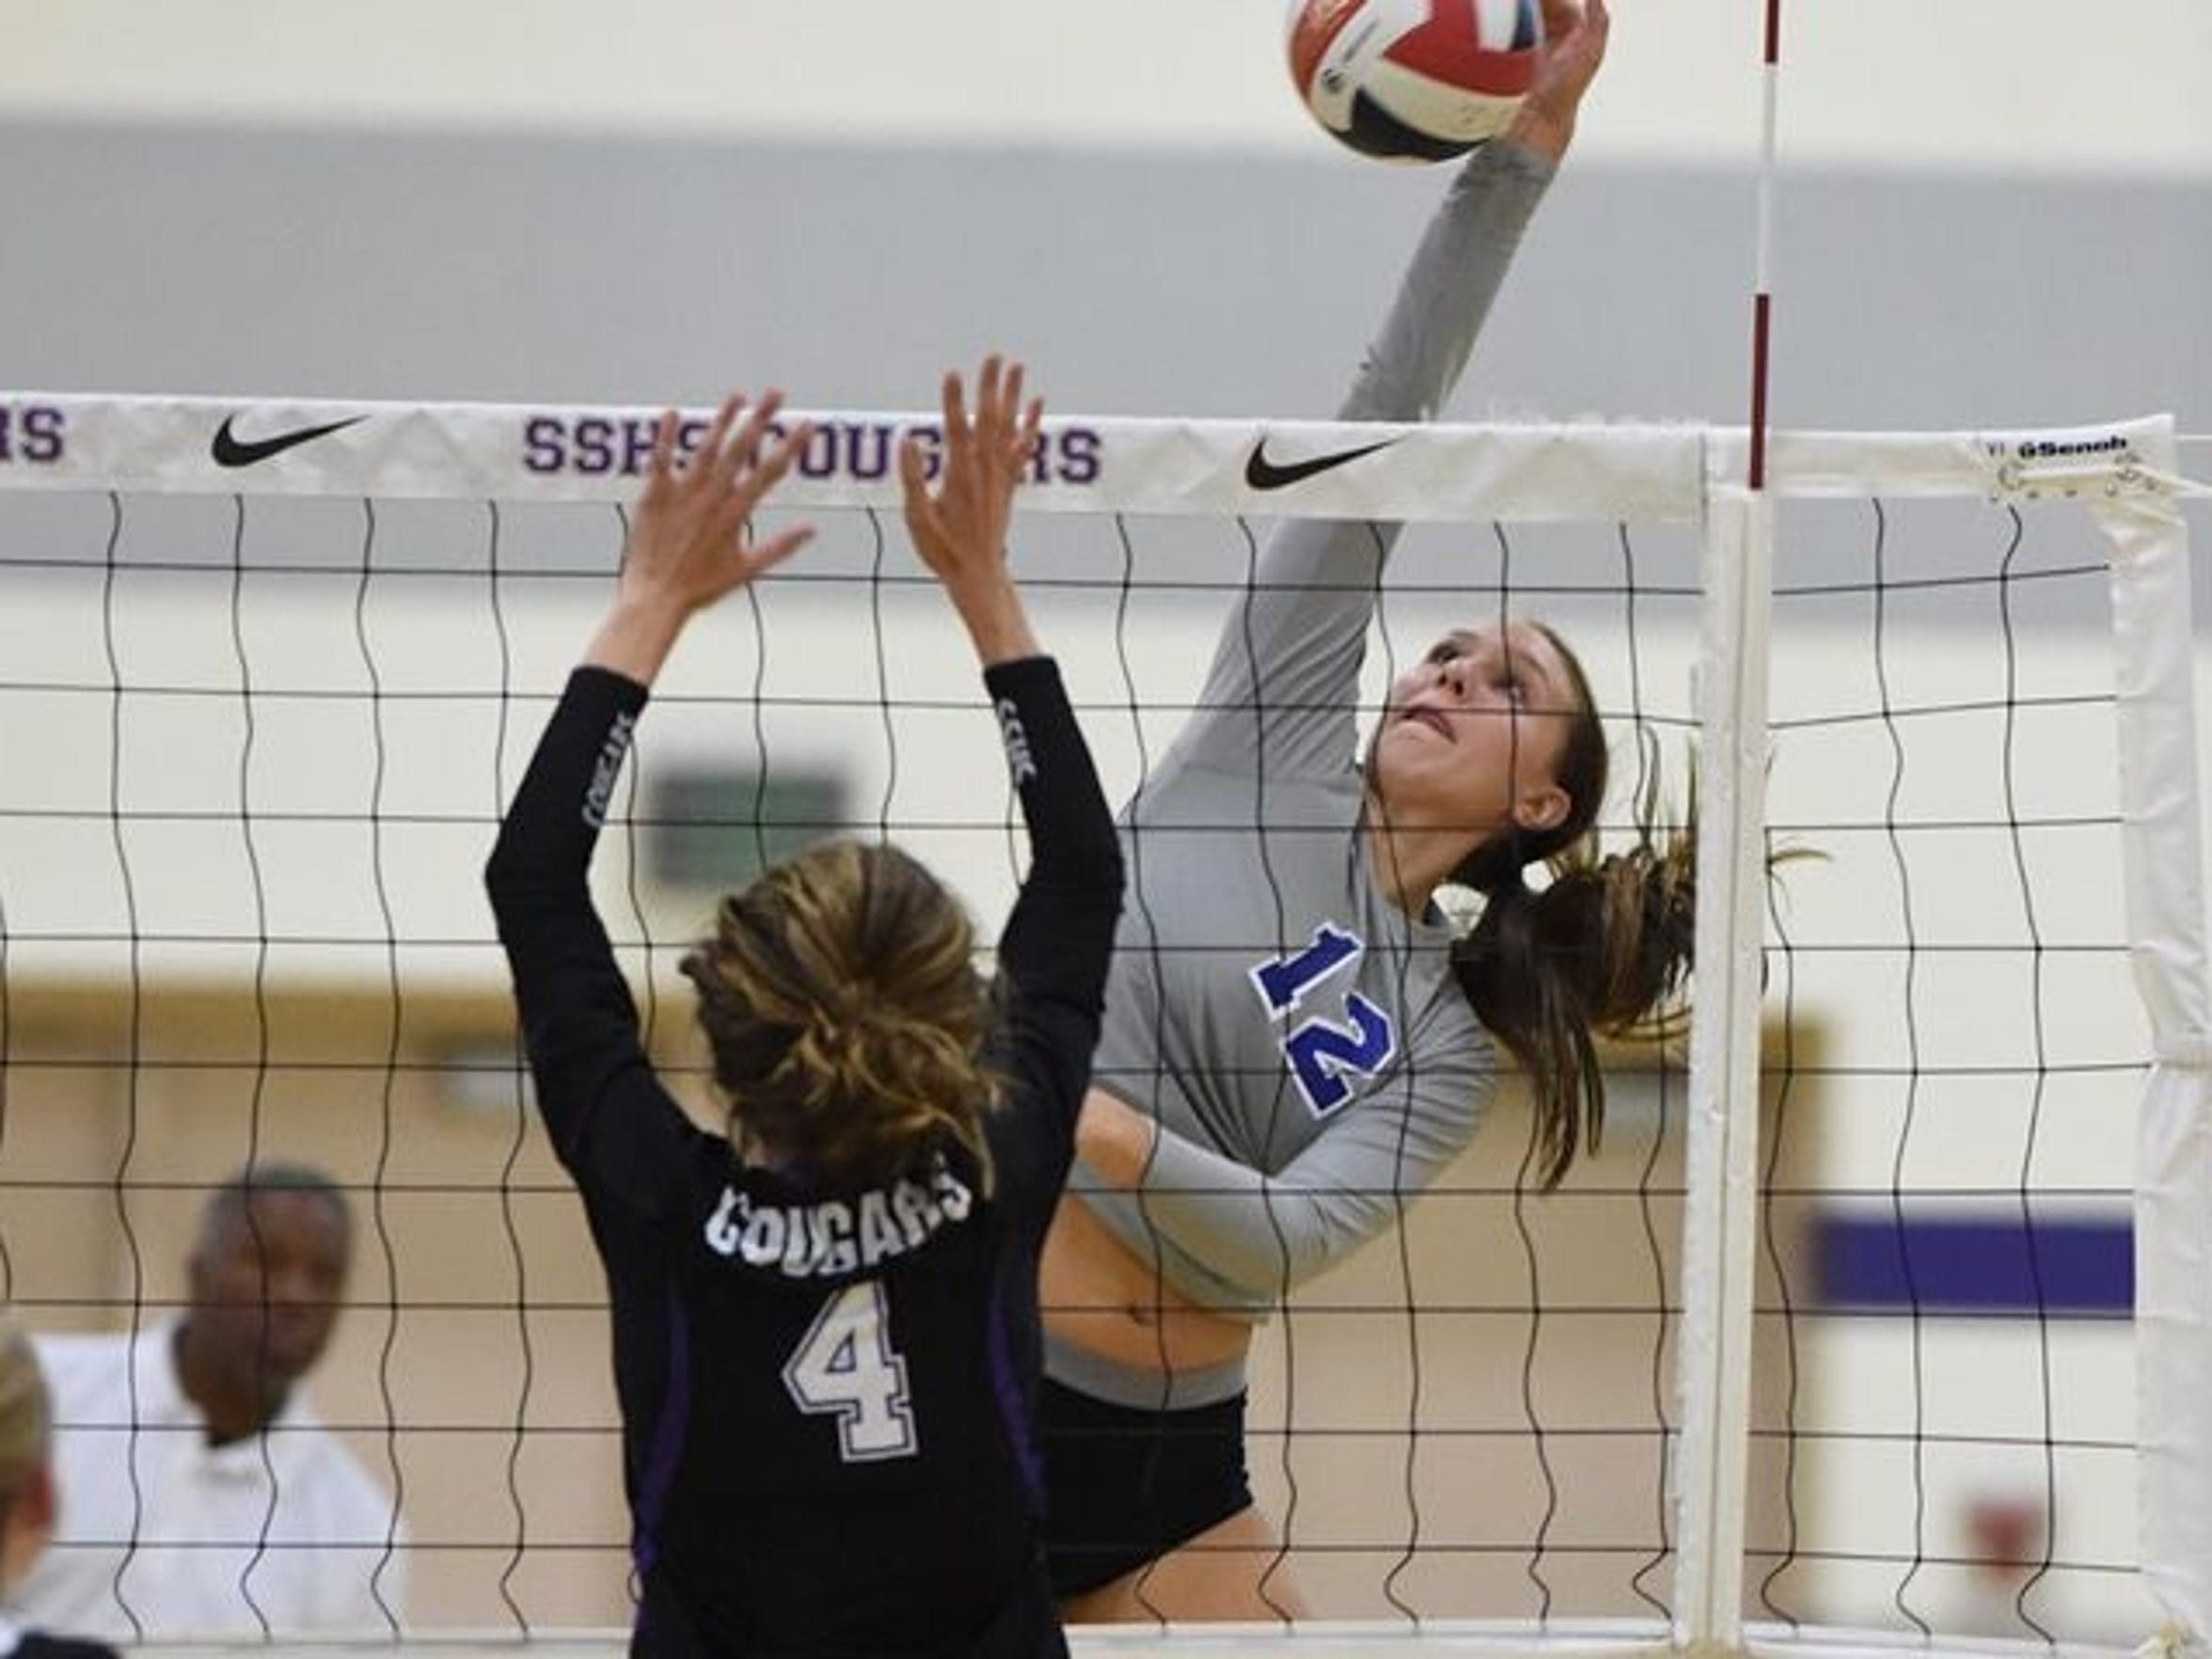 A file photo of Annika Kerns, who played volleyball